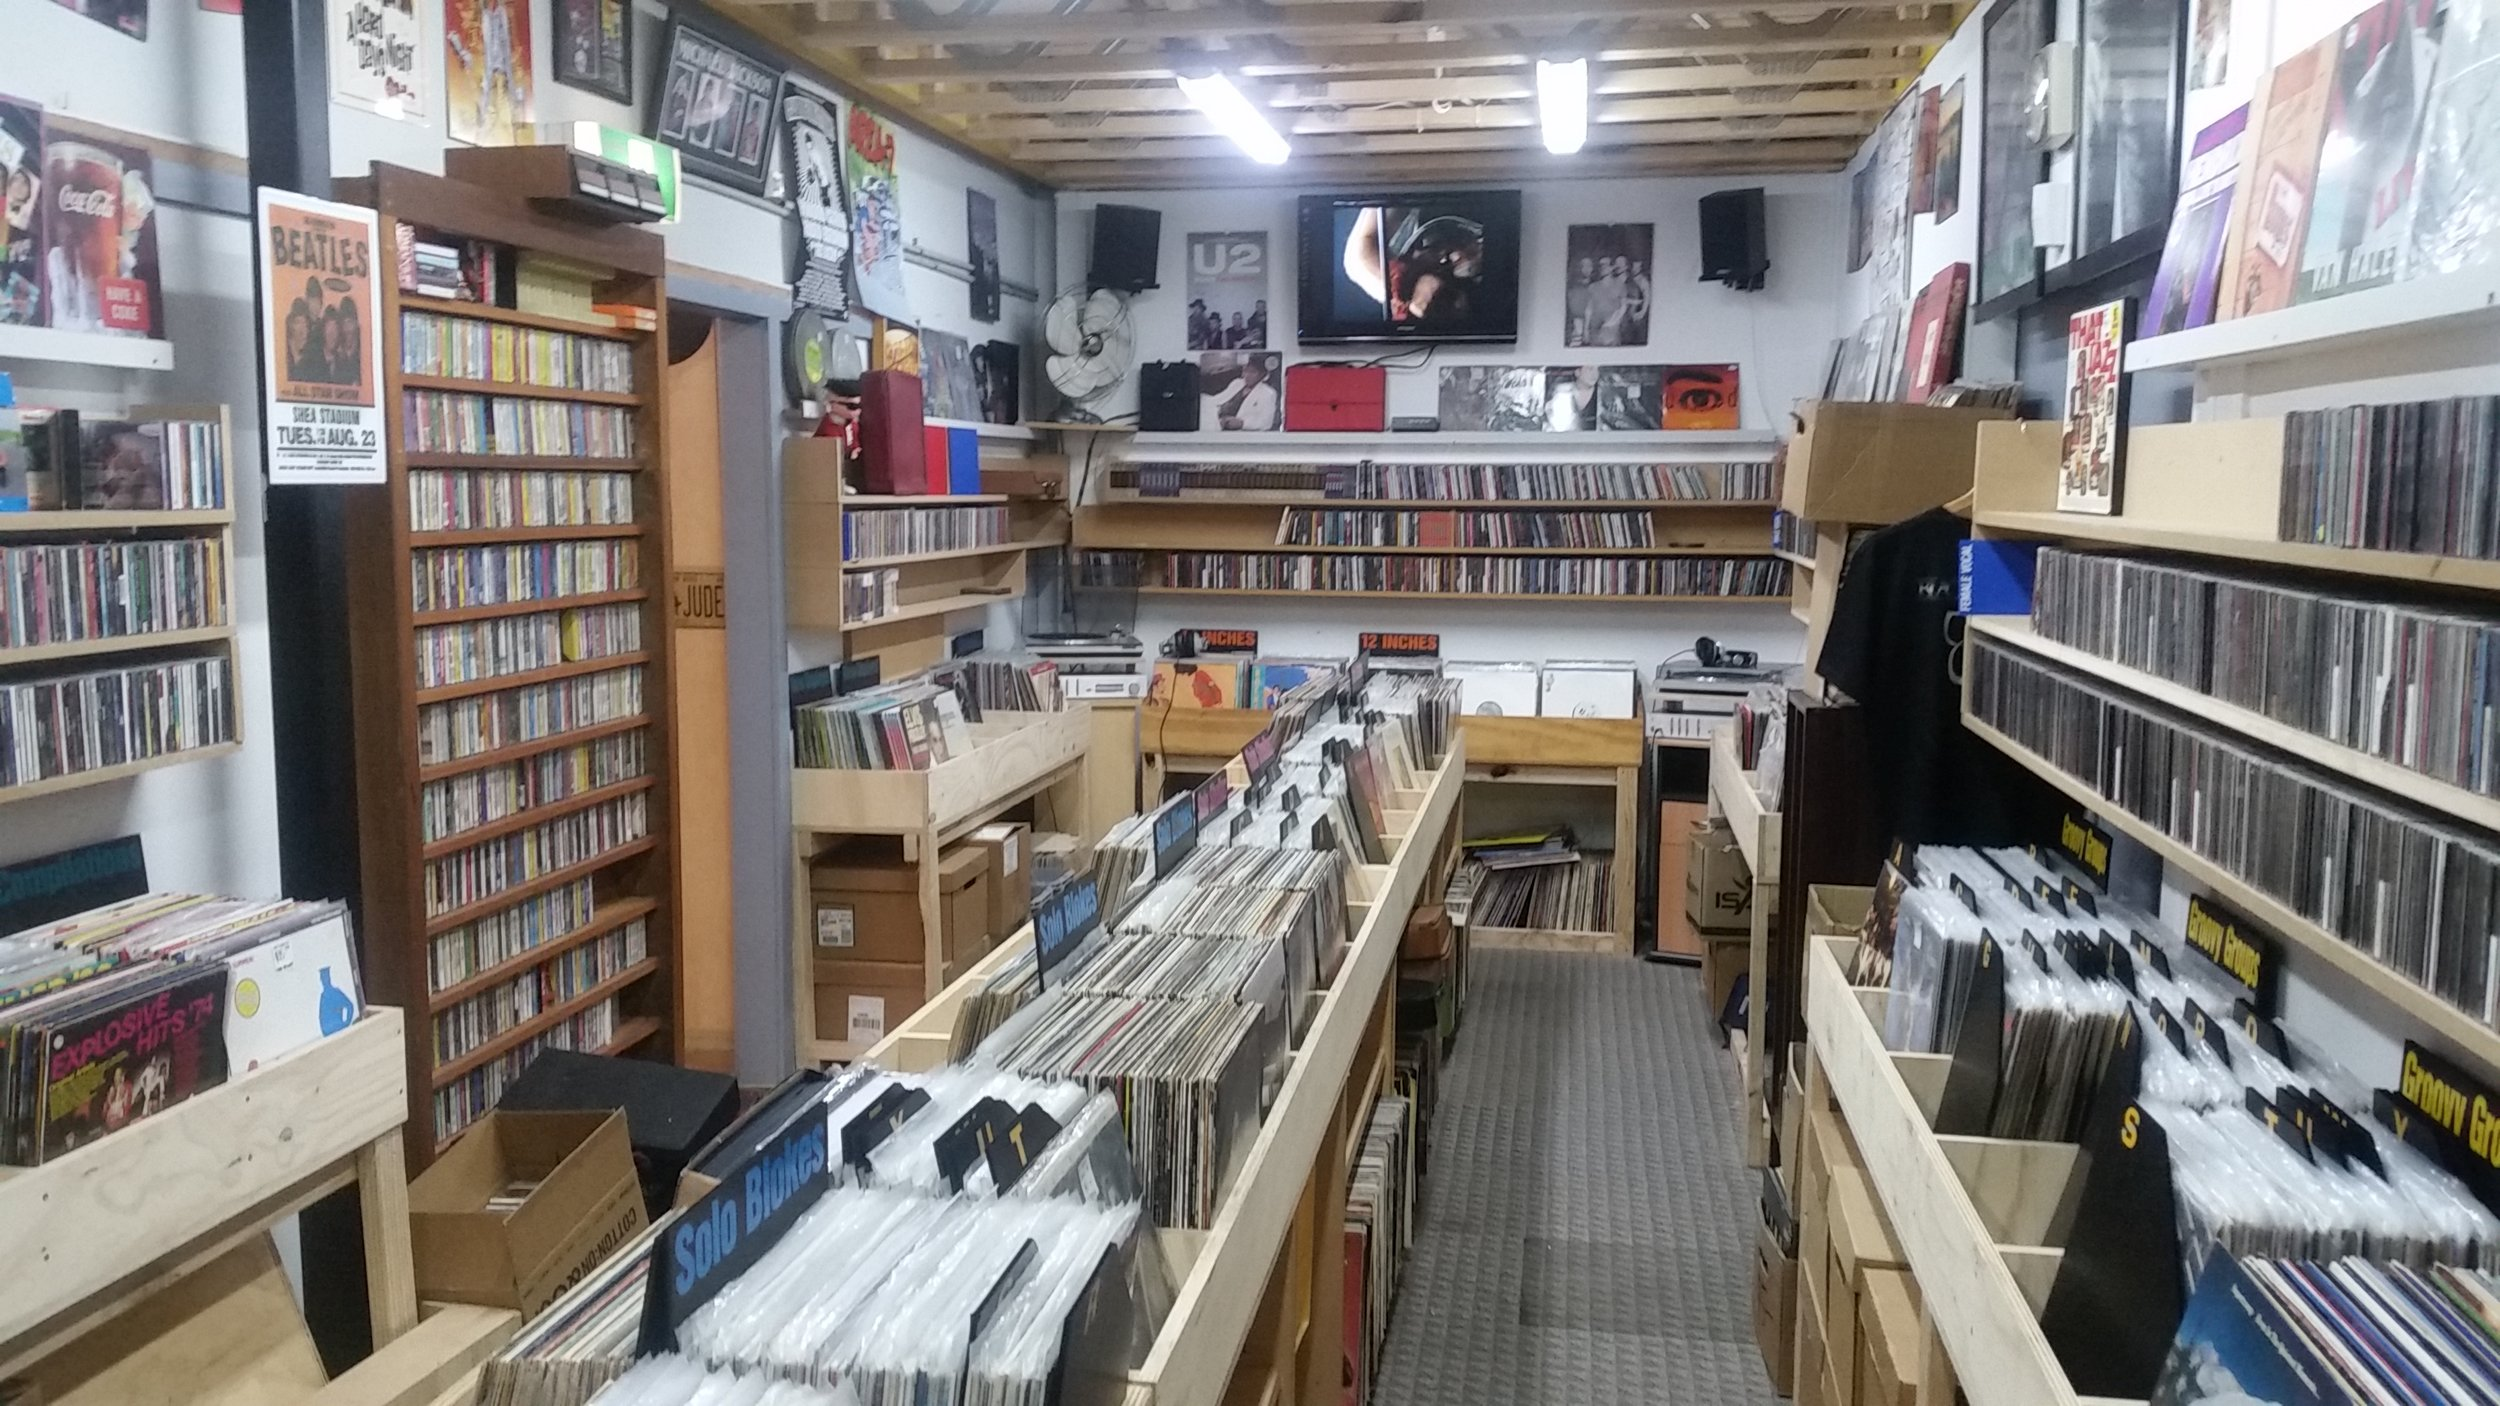 We have a huge range of vinyl records,both LP's and 45's as well as thousands of CD's,not all have been sorted or are in some sort of order so a little digging is sometimes required to find that treasure you're looking for...